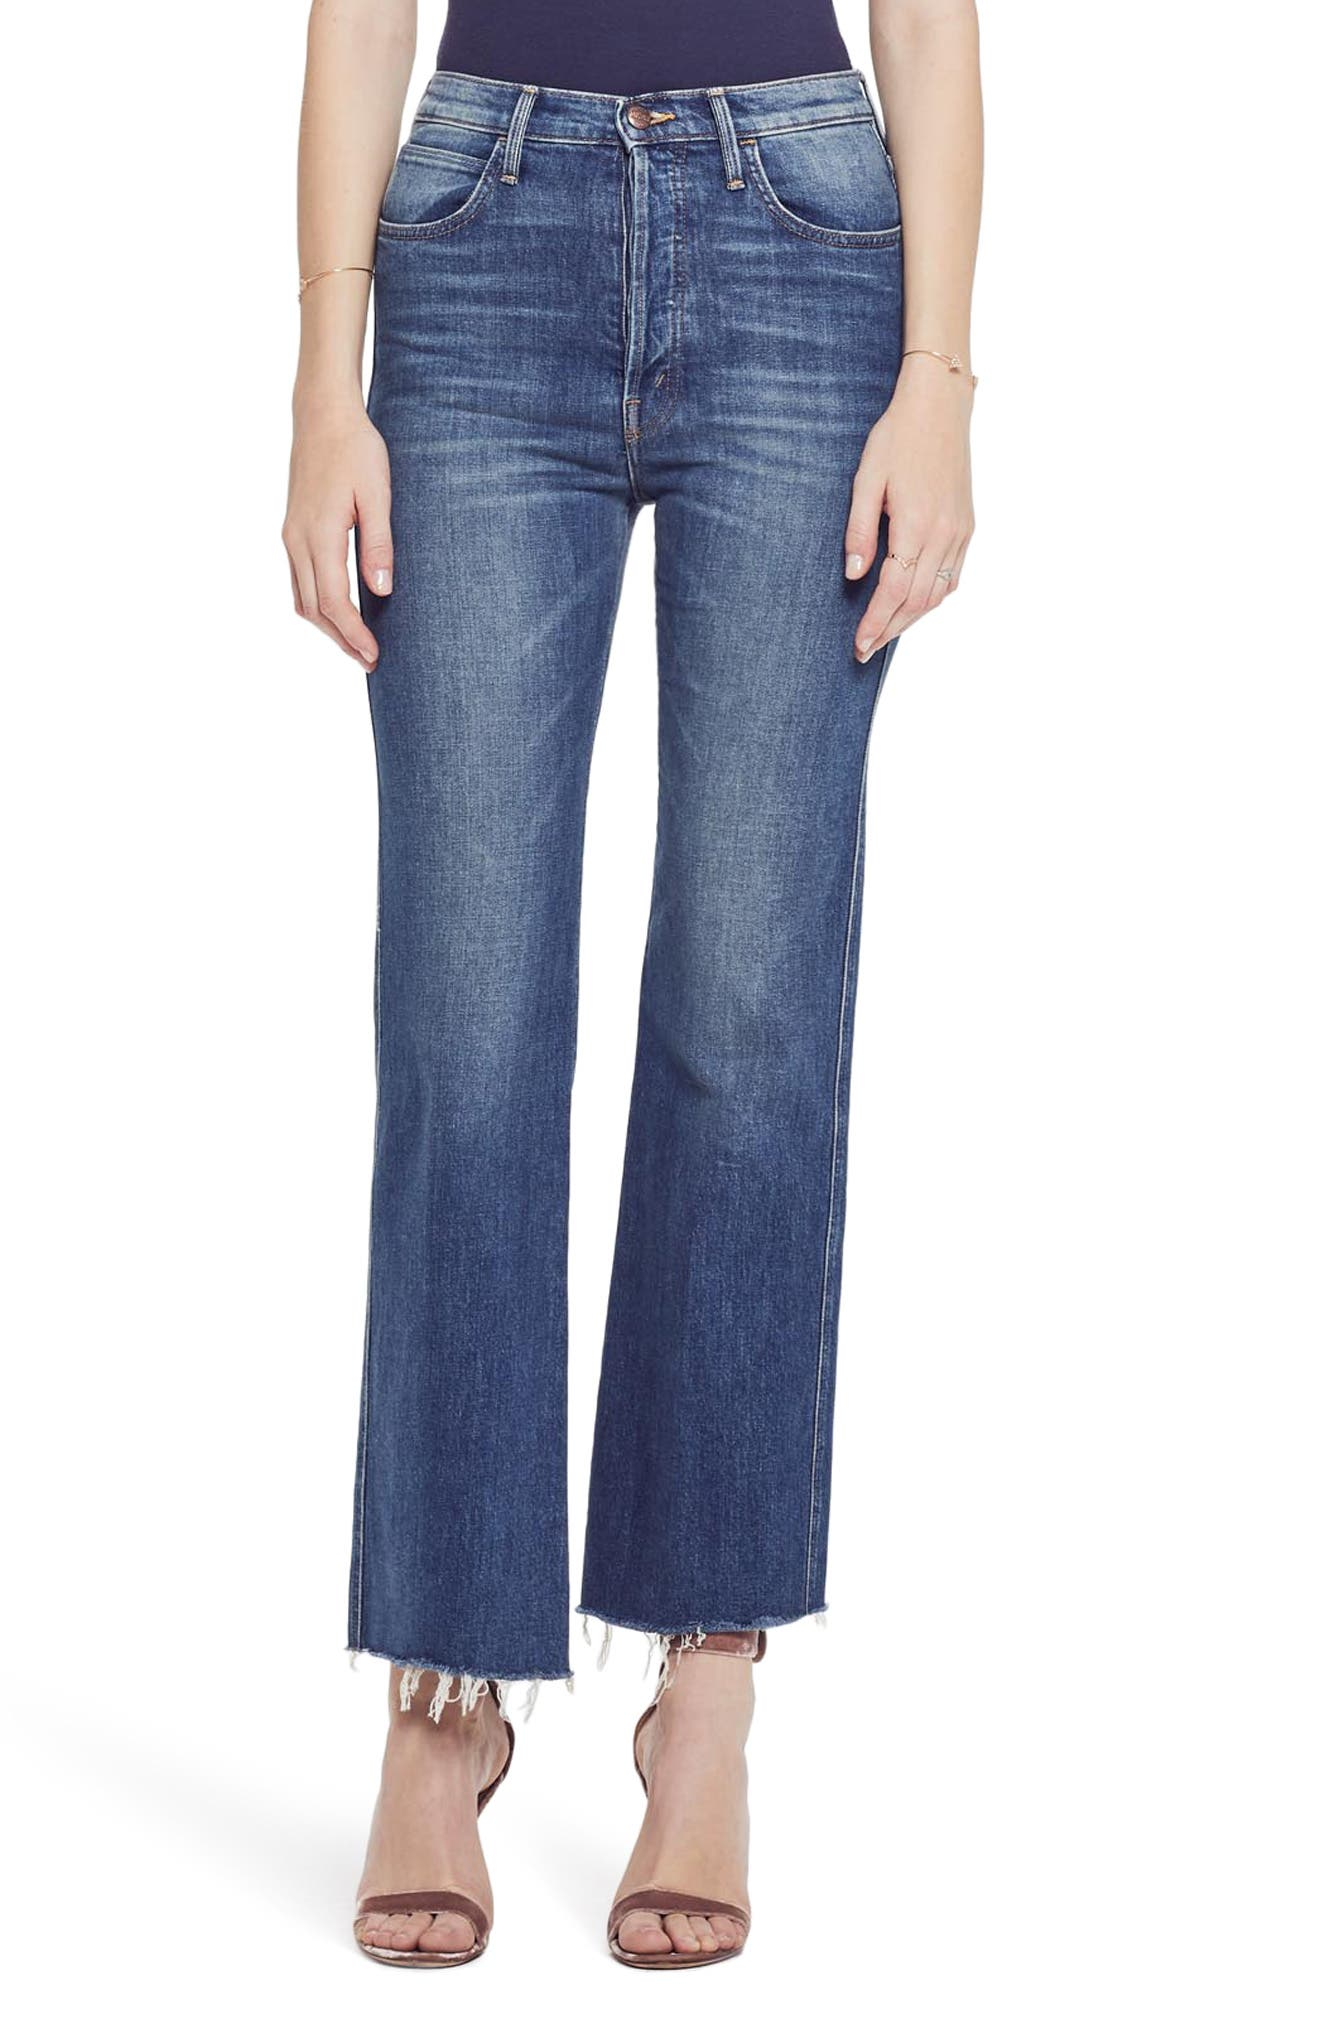 MOTHER The Tripper Super High Waist Frayed Bootcut Jeans, Main, color, JUST ONE SIP